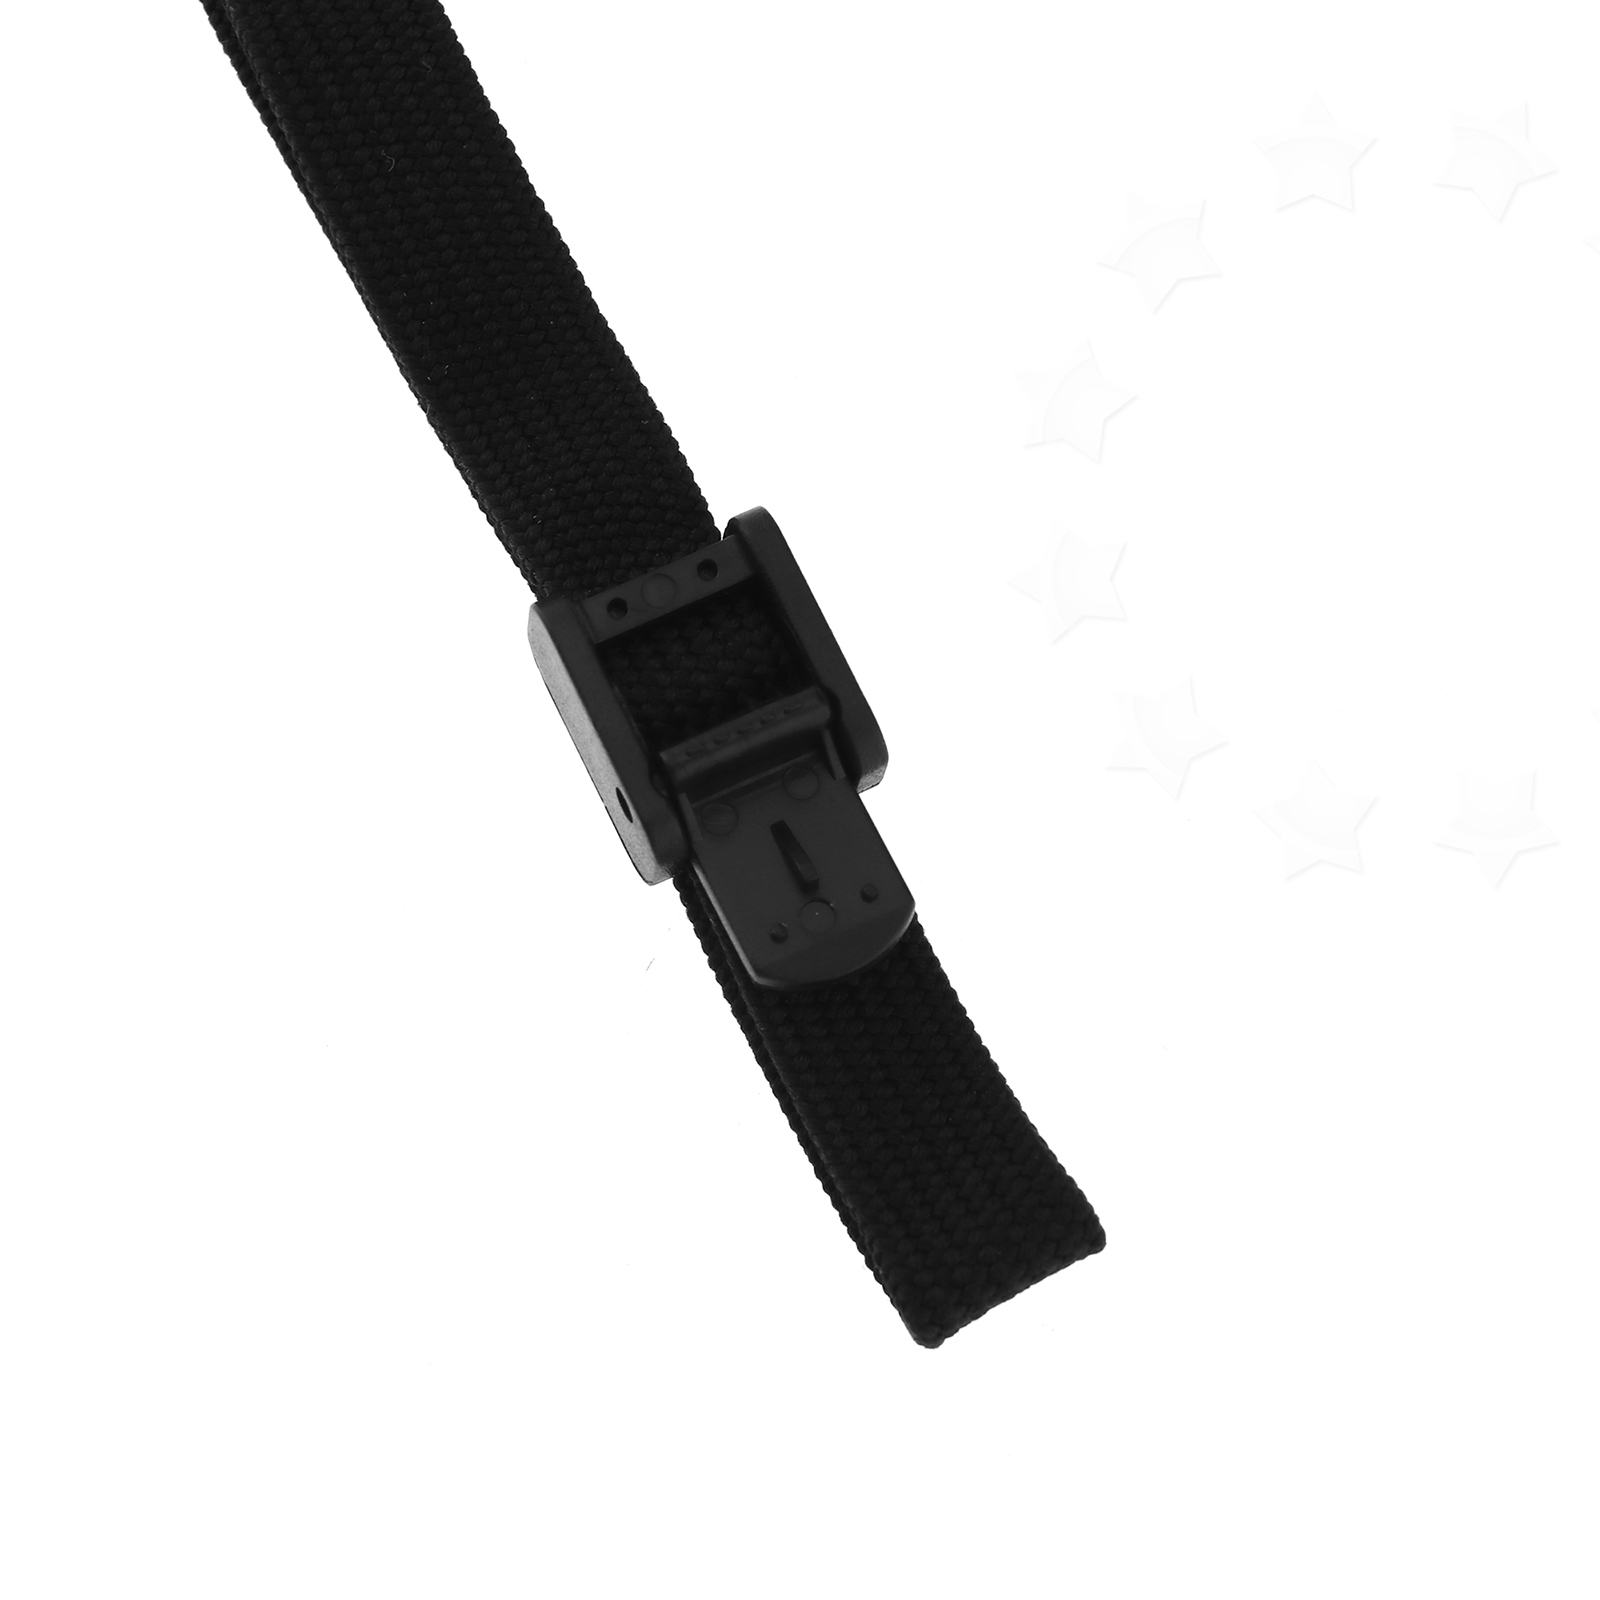 Hand-Wrist-Strap-Buckle-For-Wii-Remote-Controller-PSP-DSL-3DS-DSi-2DS-Switch